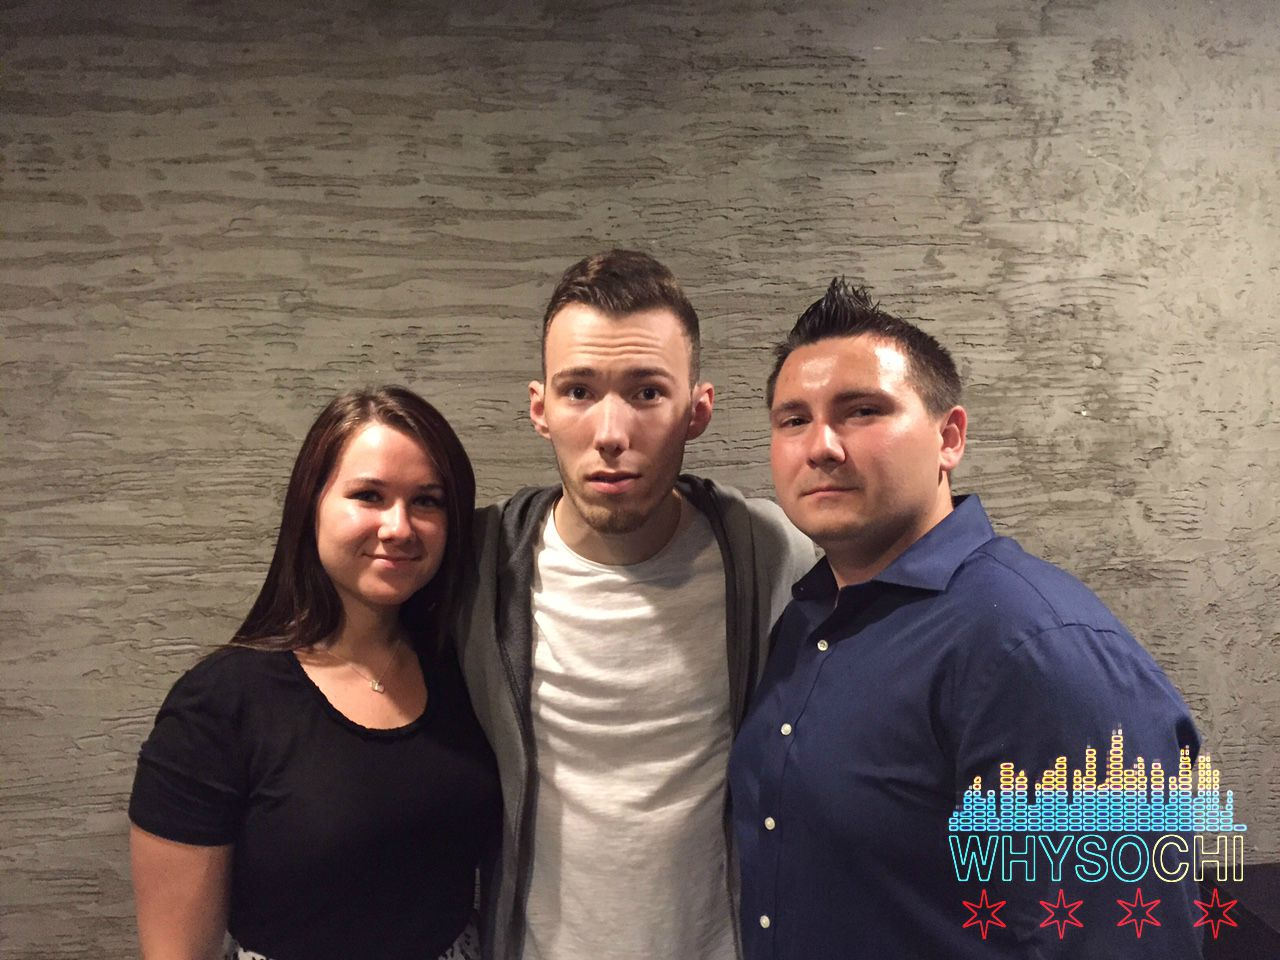 Tom Swoon With WhySoChi